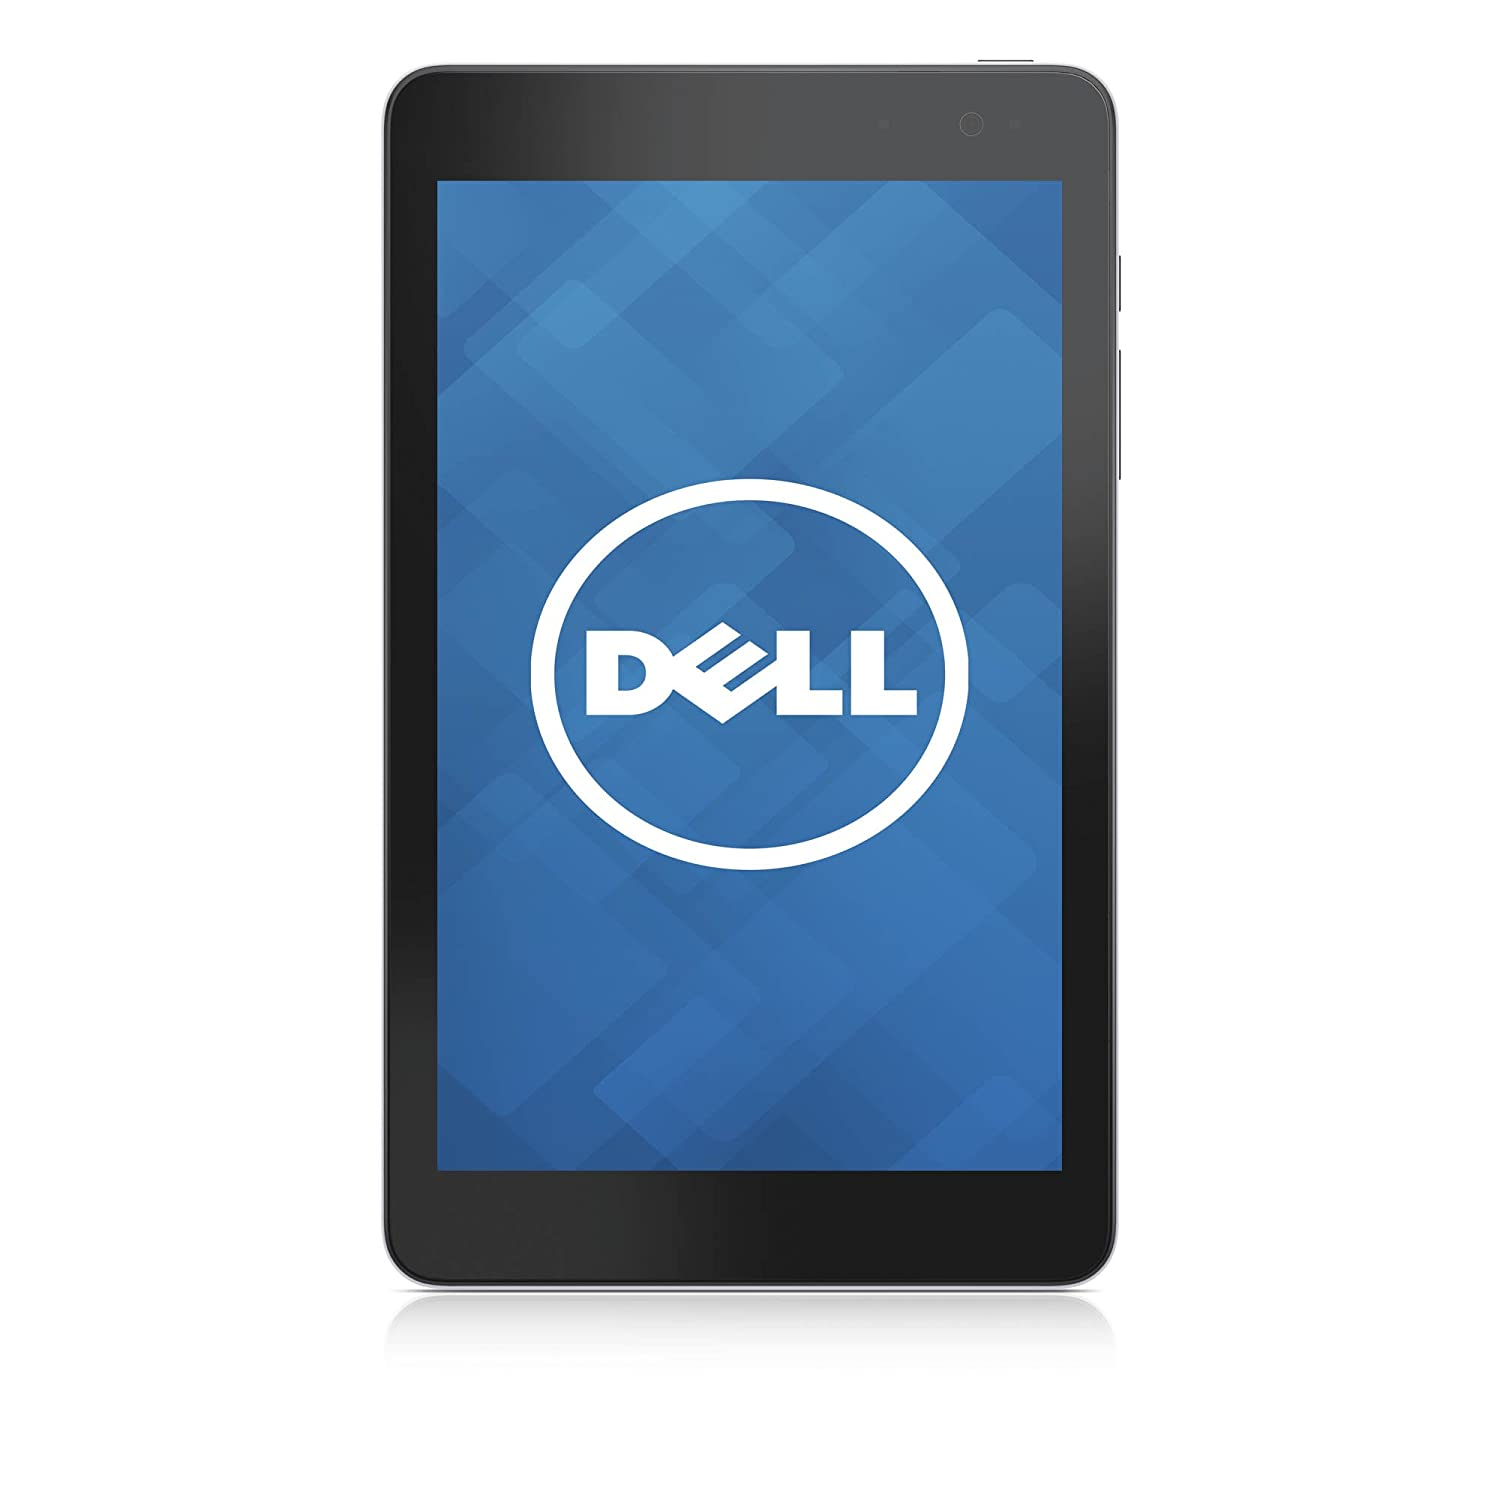 Dell Venue 8 Pro 3000 Series 32GB Windows Tablet  Roll over image to zoom in Dell Venue 8 Pro  Series 32GB Windows Tablet